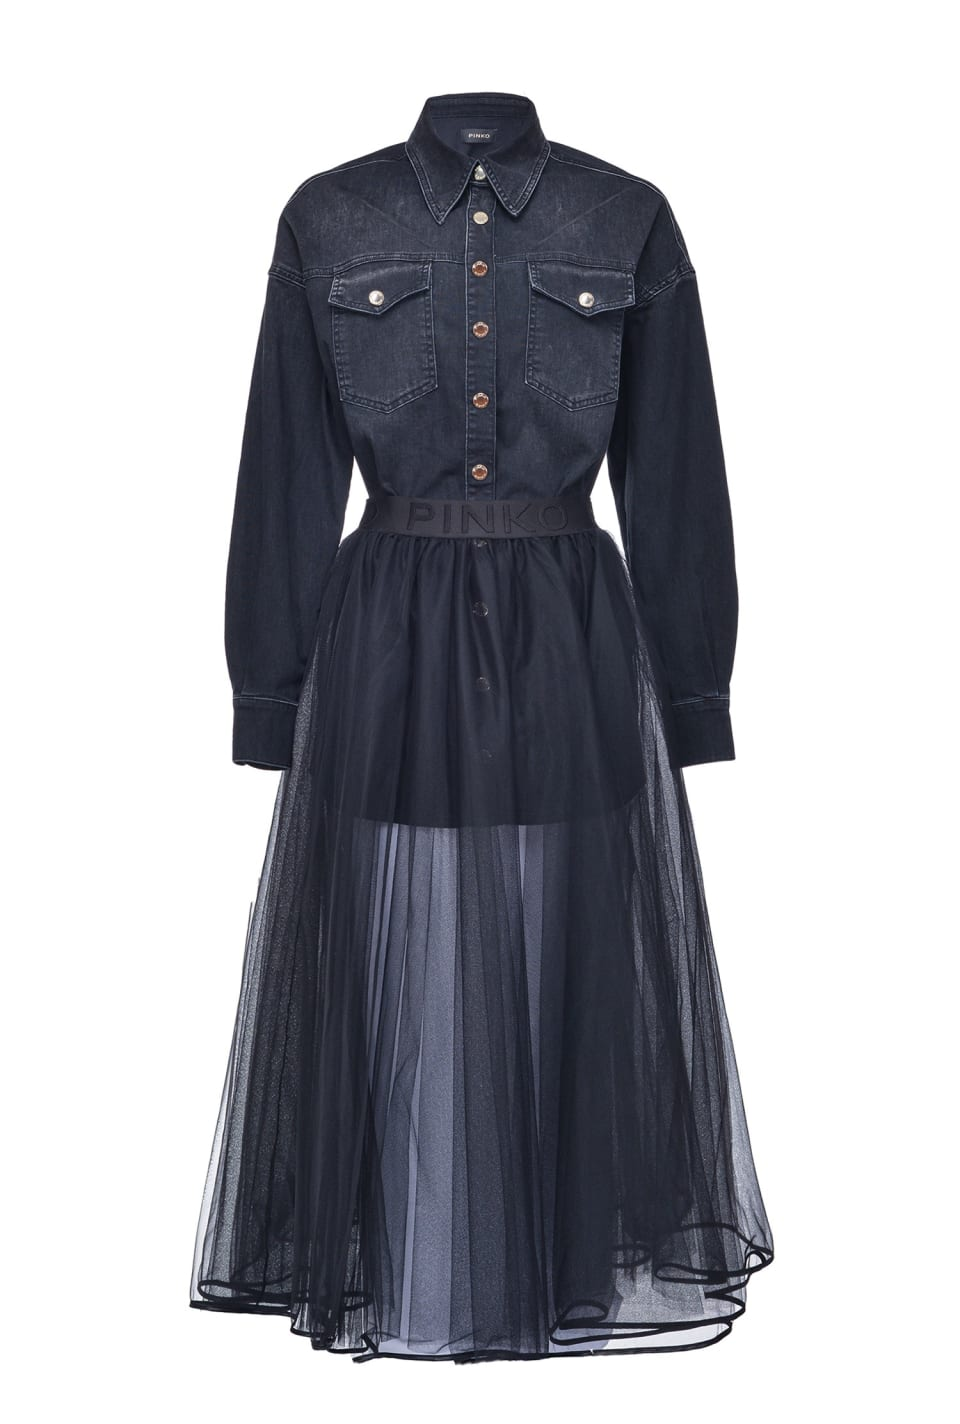 Abito due pezzi in denim con gonna in tulle